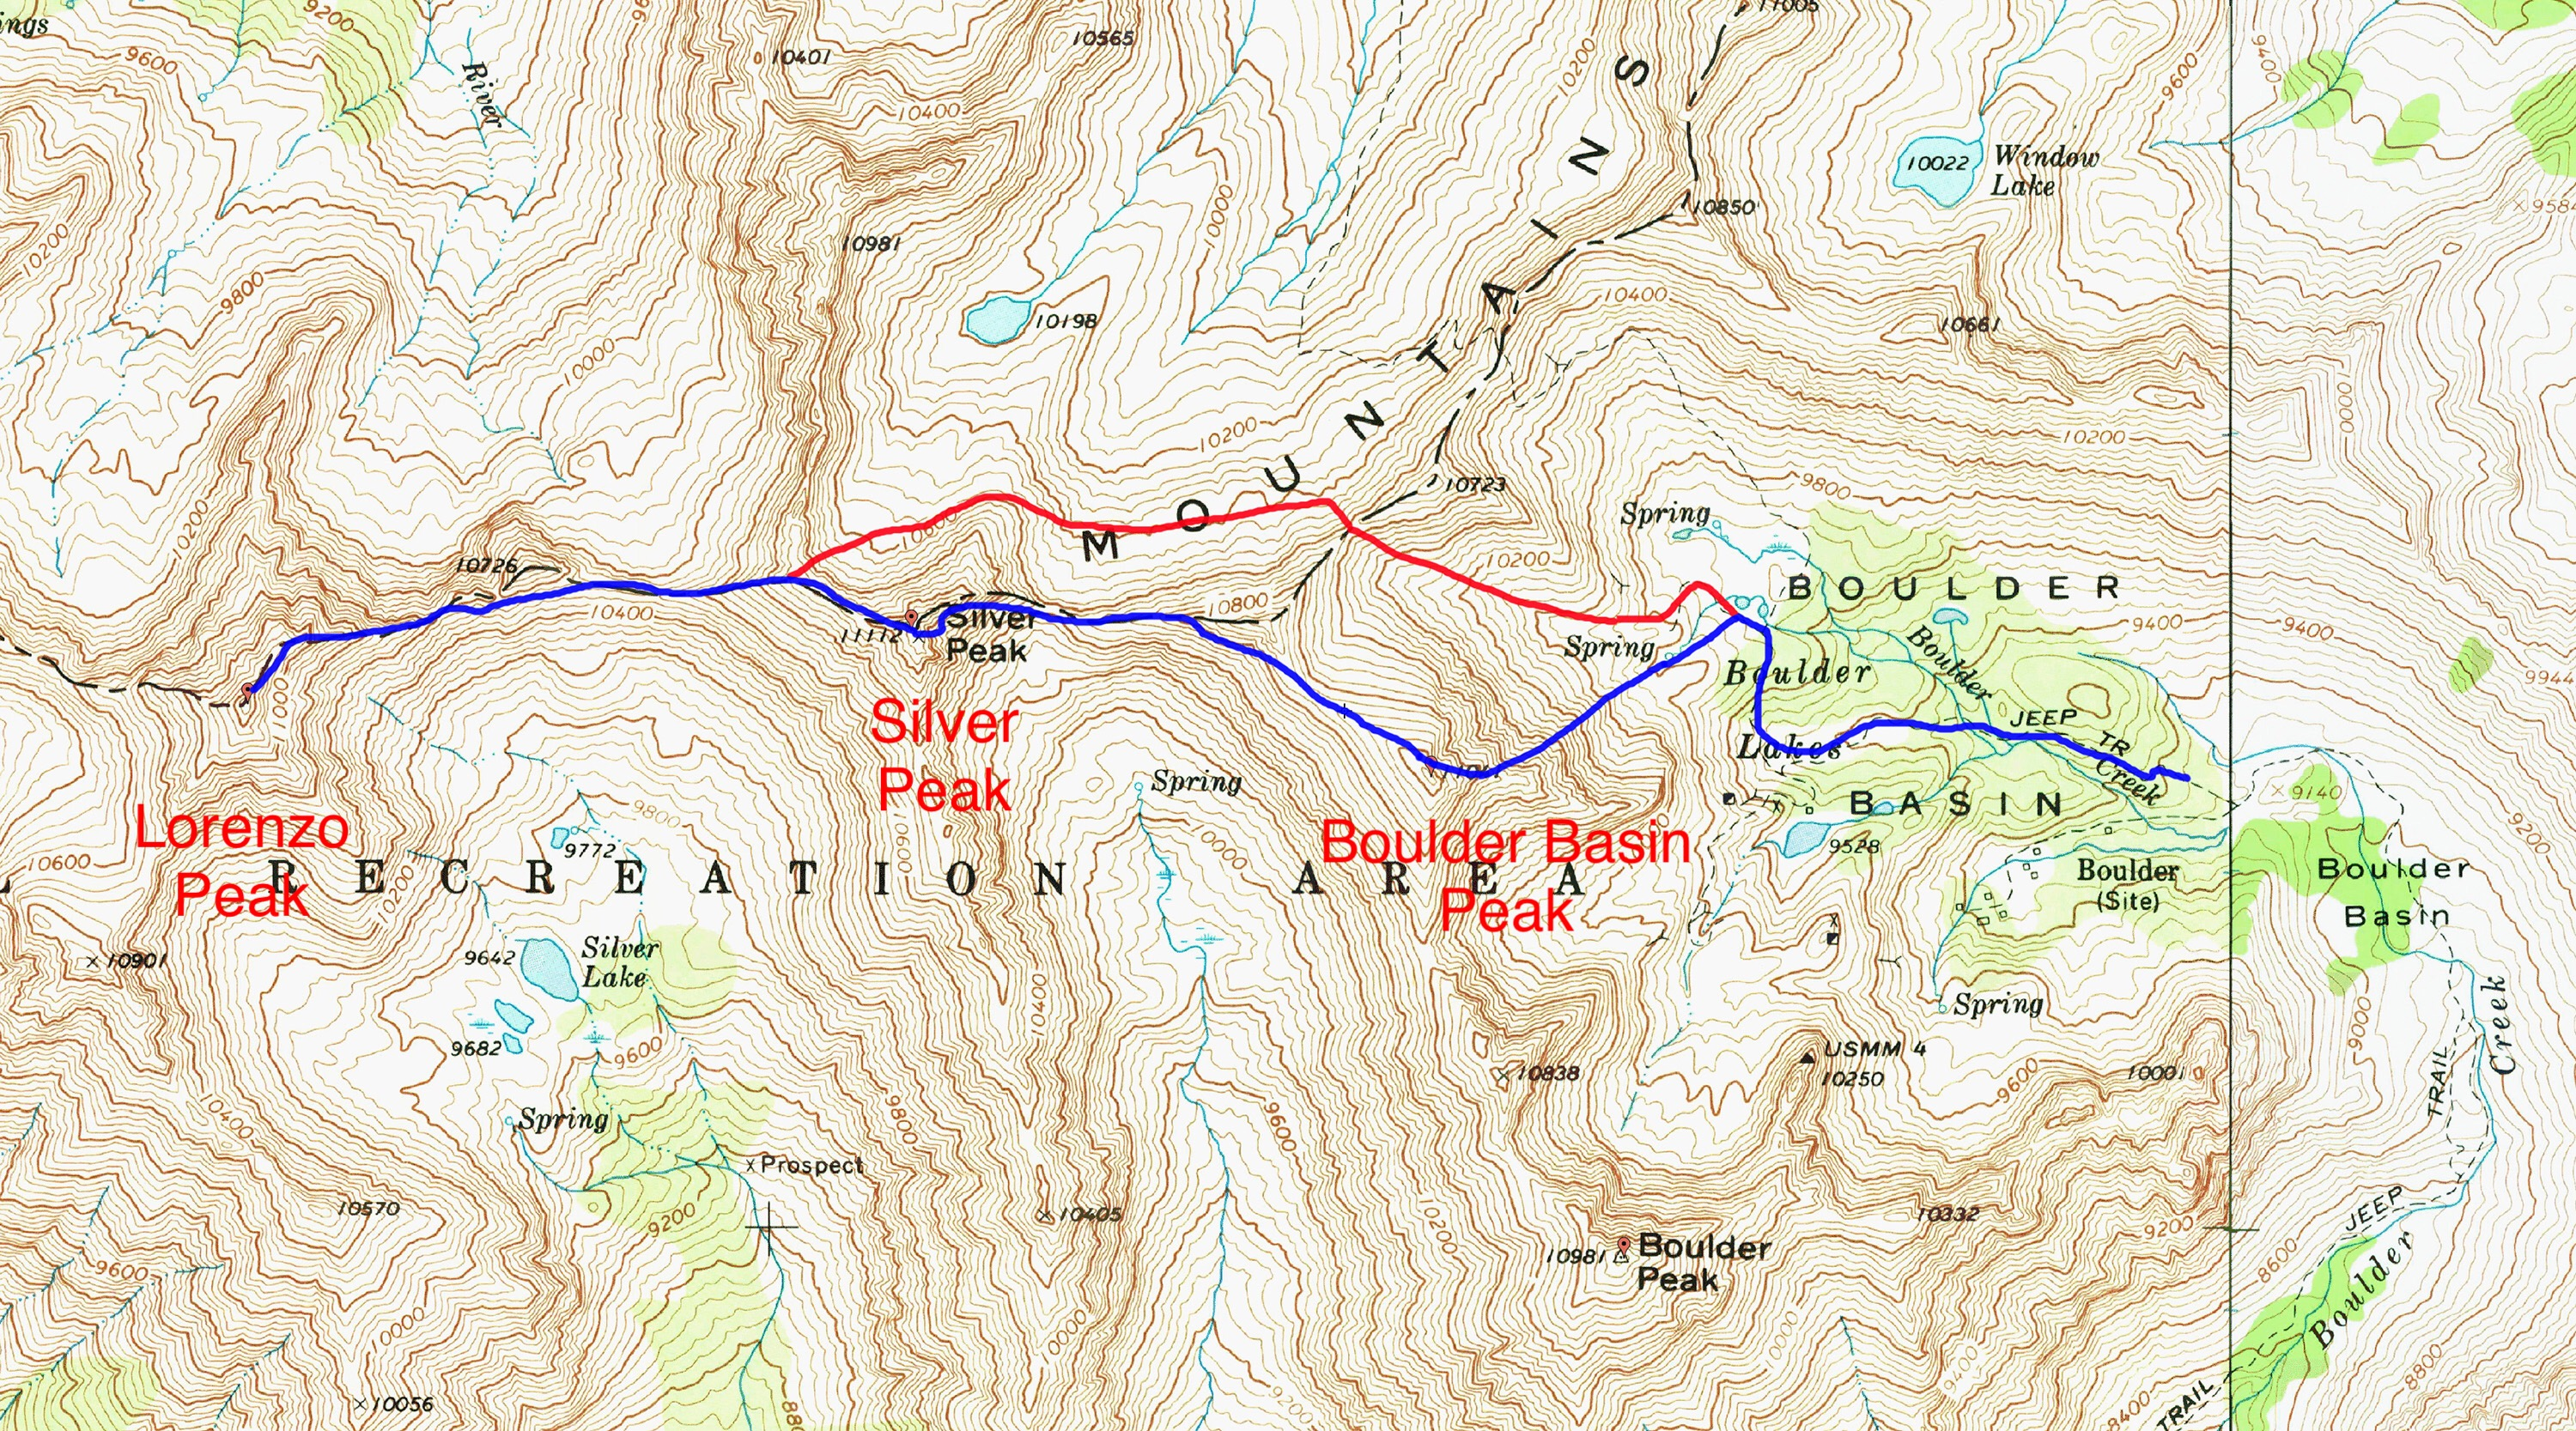 Derek's traverse route. The red line shows the bypass followed on the return.